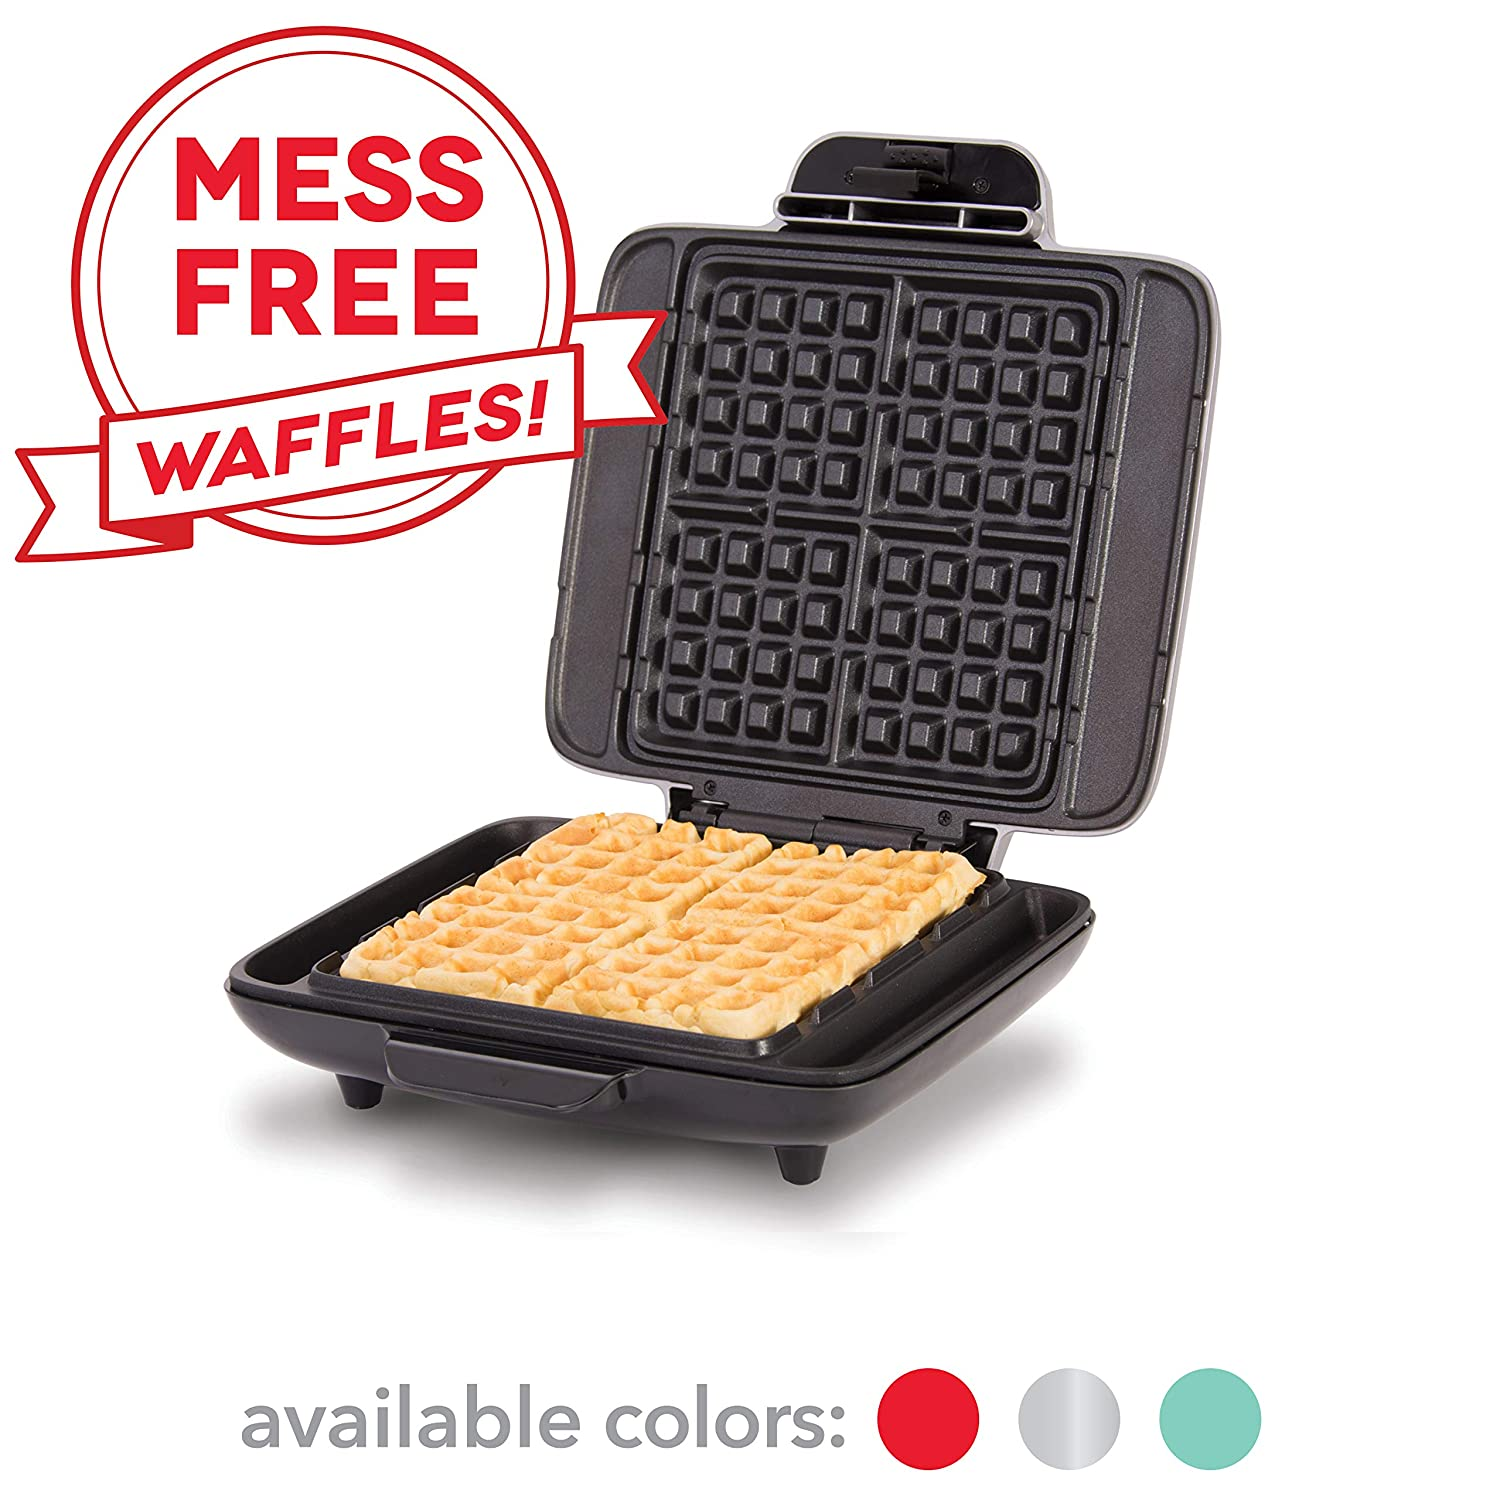 DASH No-Drip Belgian Waffle Maker Waffle Iron 1200W Waffle Maker Machine For Waffles, Hash Browns, or Any Breakfast, Lunch, Snacks with Easy Clean, Non-Stick Mess Free Sides – Silver